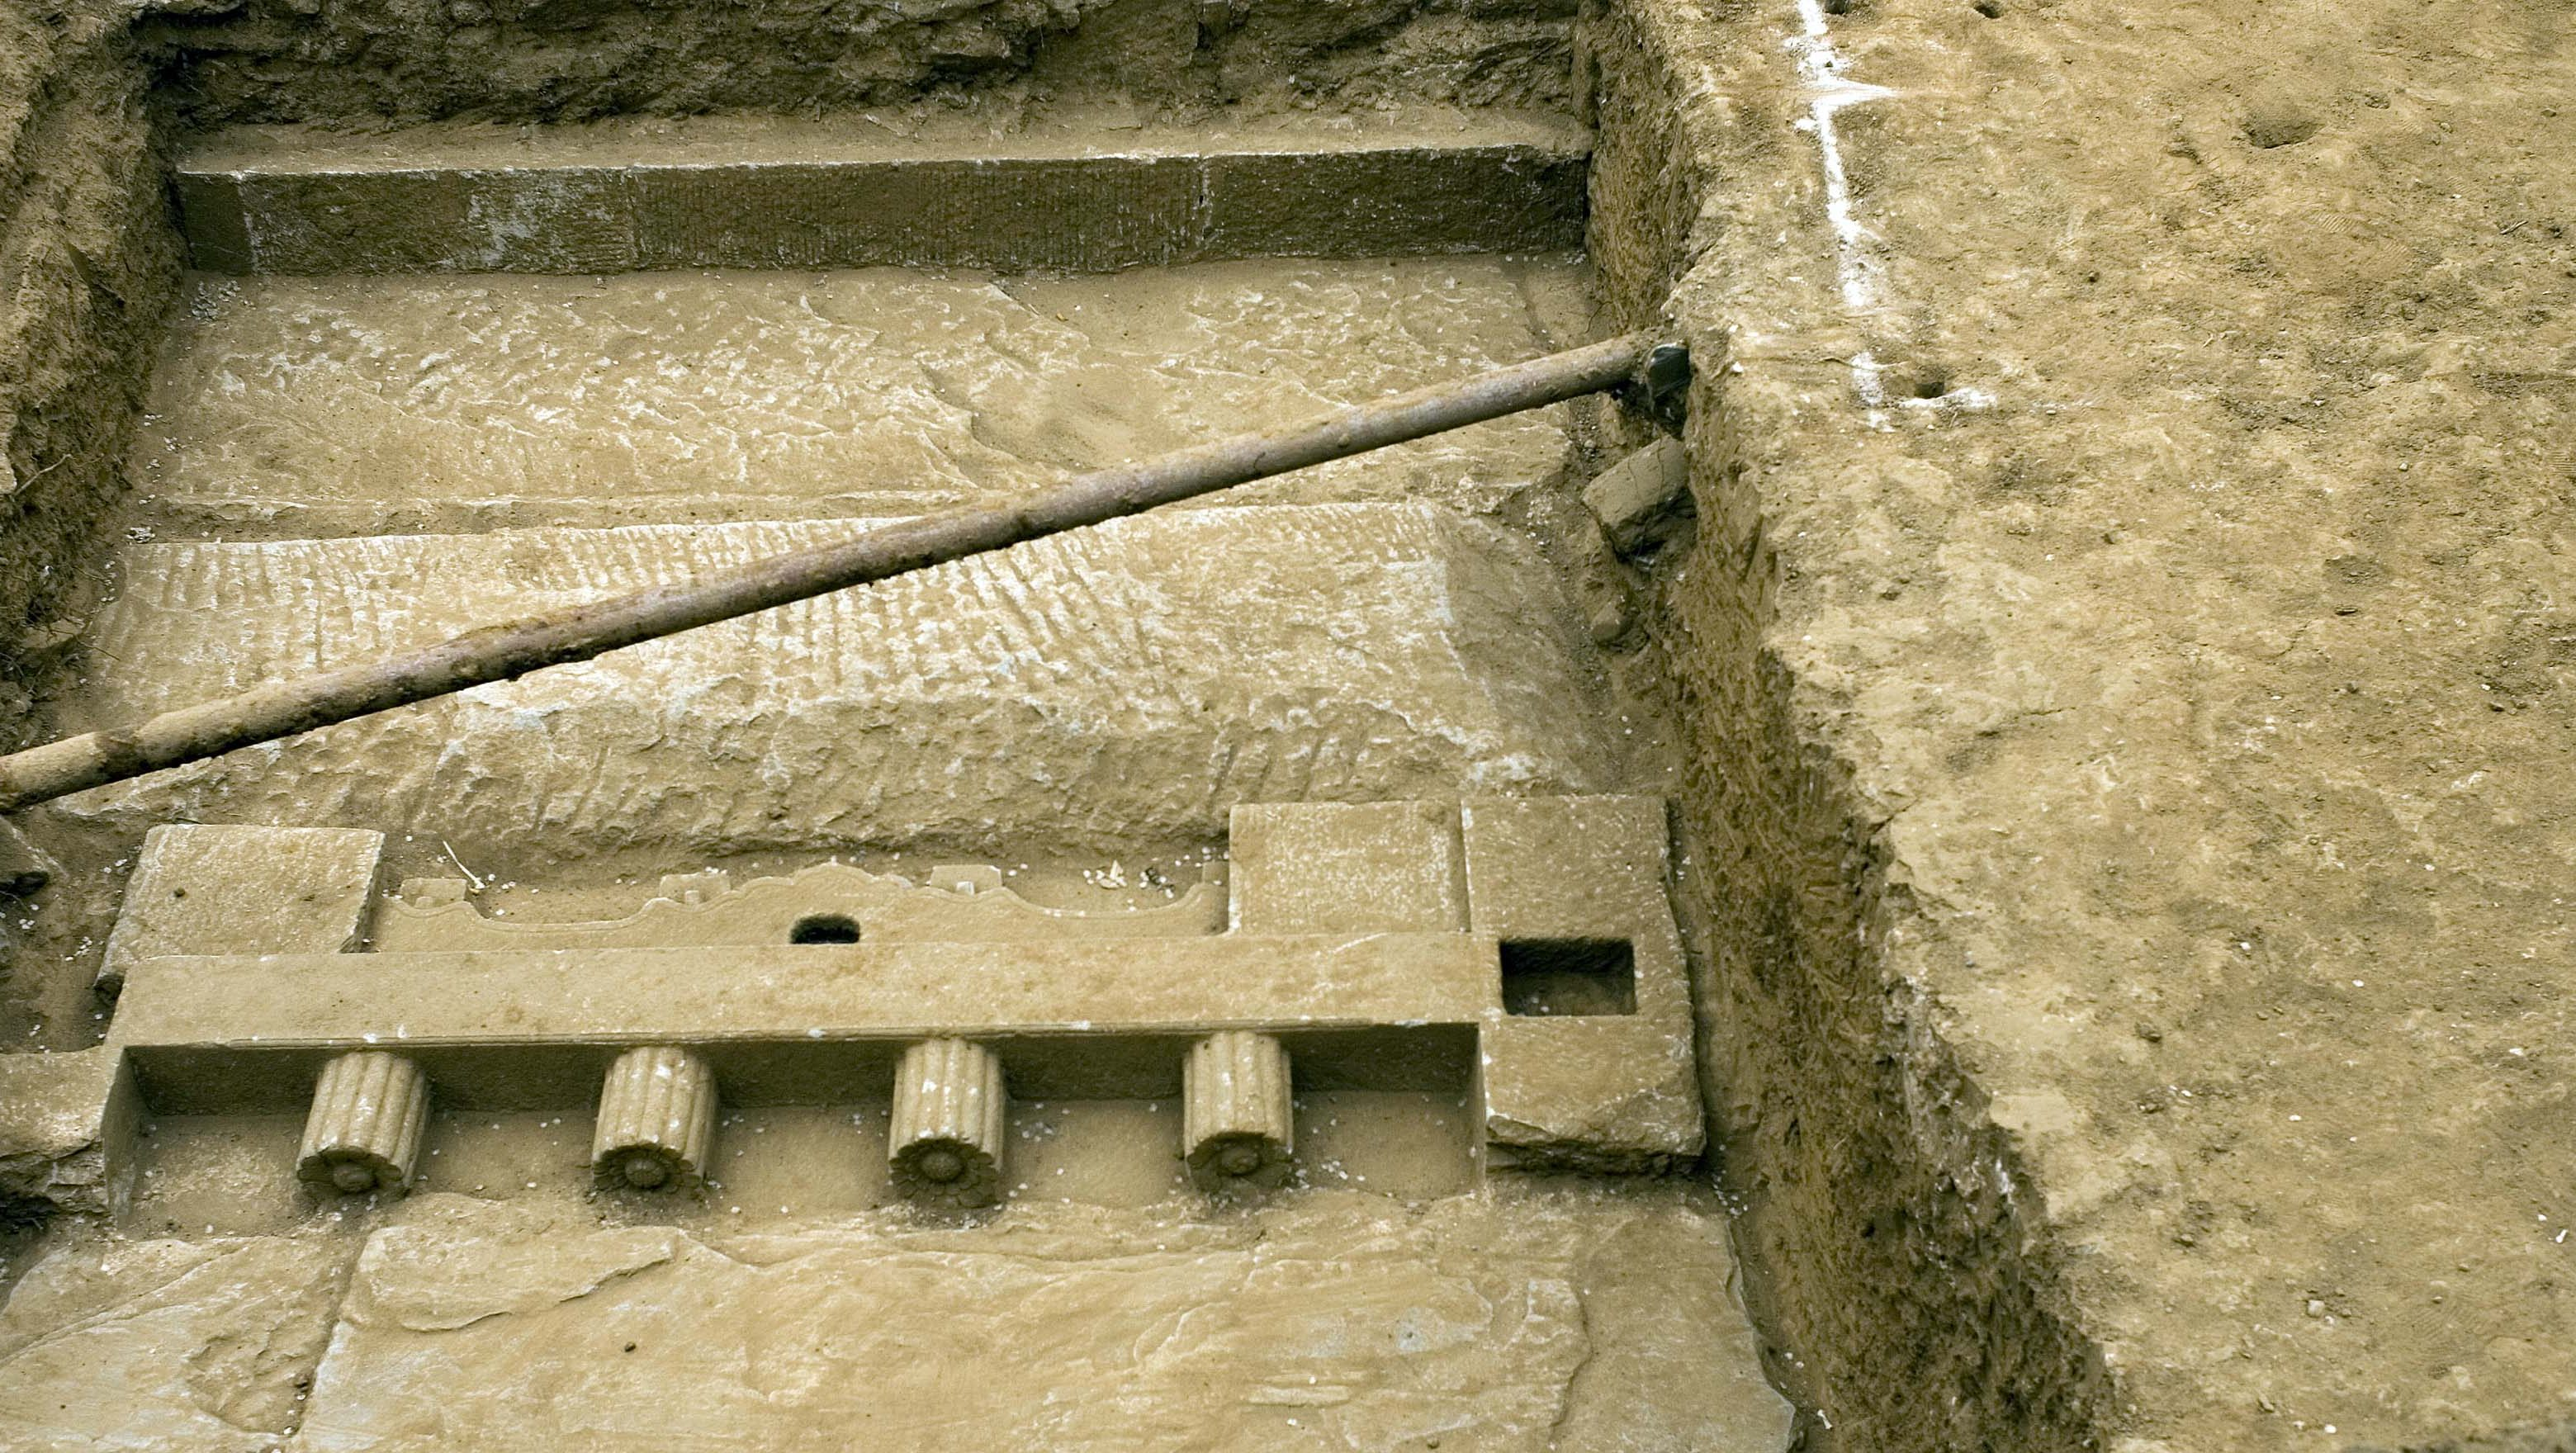 Relics seen in an open pit of suspected imperial-era tombs at the construction site of a shooting range for the 2008 Beijing Olympic Games where work has been suspended in Beijing, China, Monday, May 8, 2006. The tombs, found in mid-April, are believed to date back five to six centuries to the Ming dynasty and may be those of eunuchs serving at the imperial court, the Beijing Morning Post said. Beijing has been the site of imperial and other capitals for more than 1,000 years, and almost every major building project unearths gravesites or relics. Most are removed or destroyed before experts can examine them.